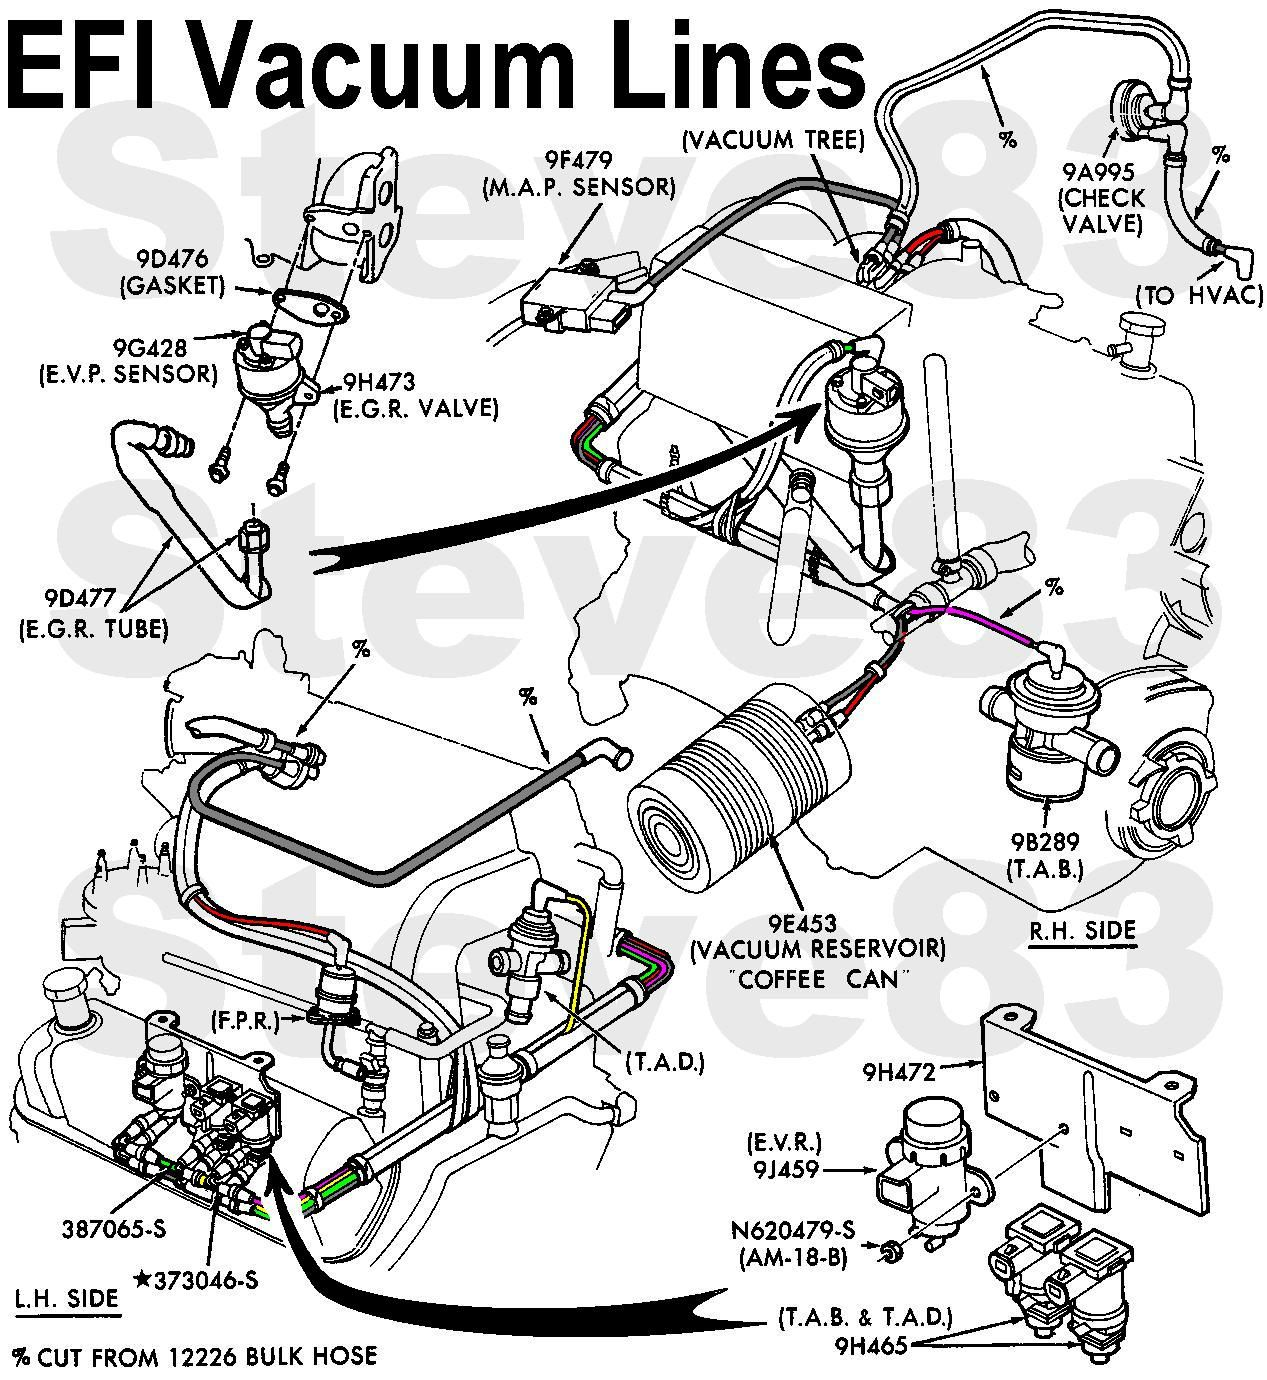 1994 Ford 351w Engine Diagram Not Lossing Wiring 1978 351 F150 1989 04 Lariat 4x2 Stock 98 Nascar Rh Pinterest Com Stroker Engines Block